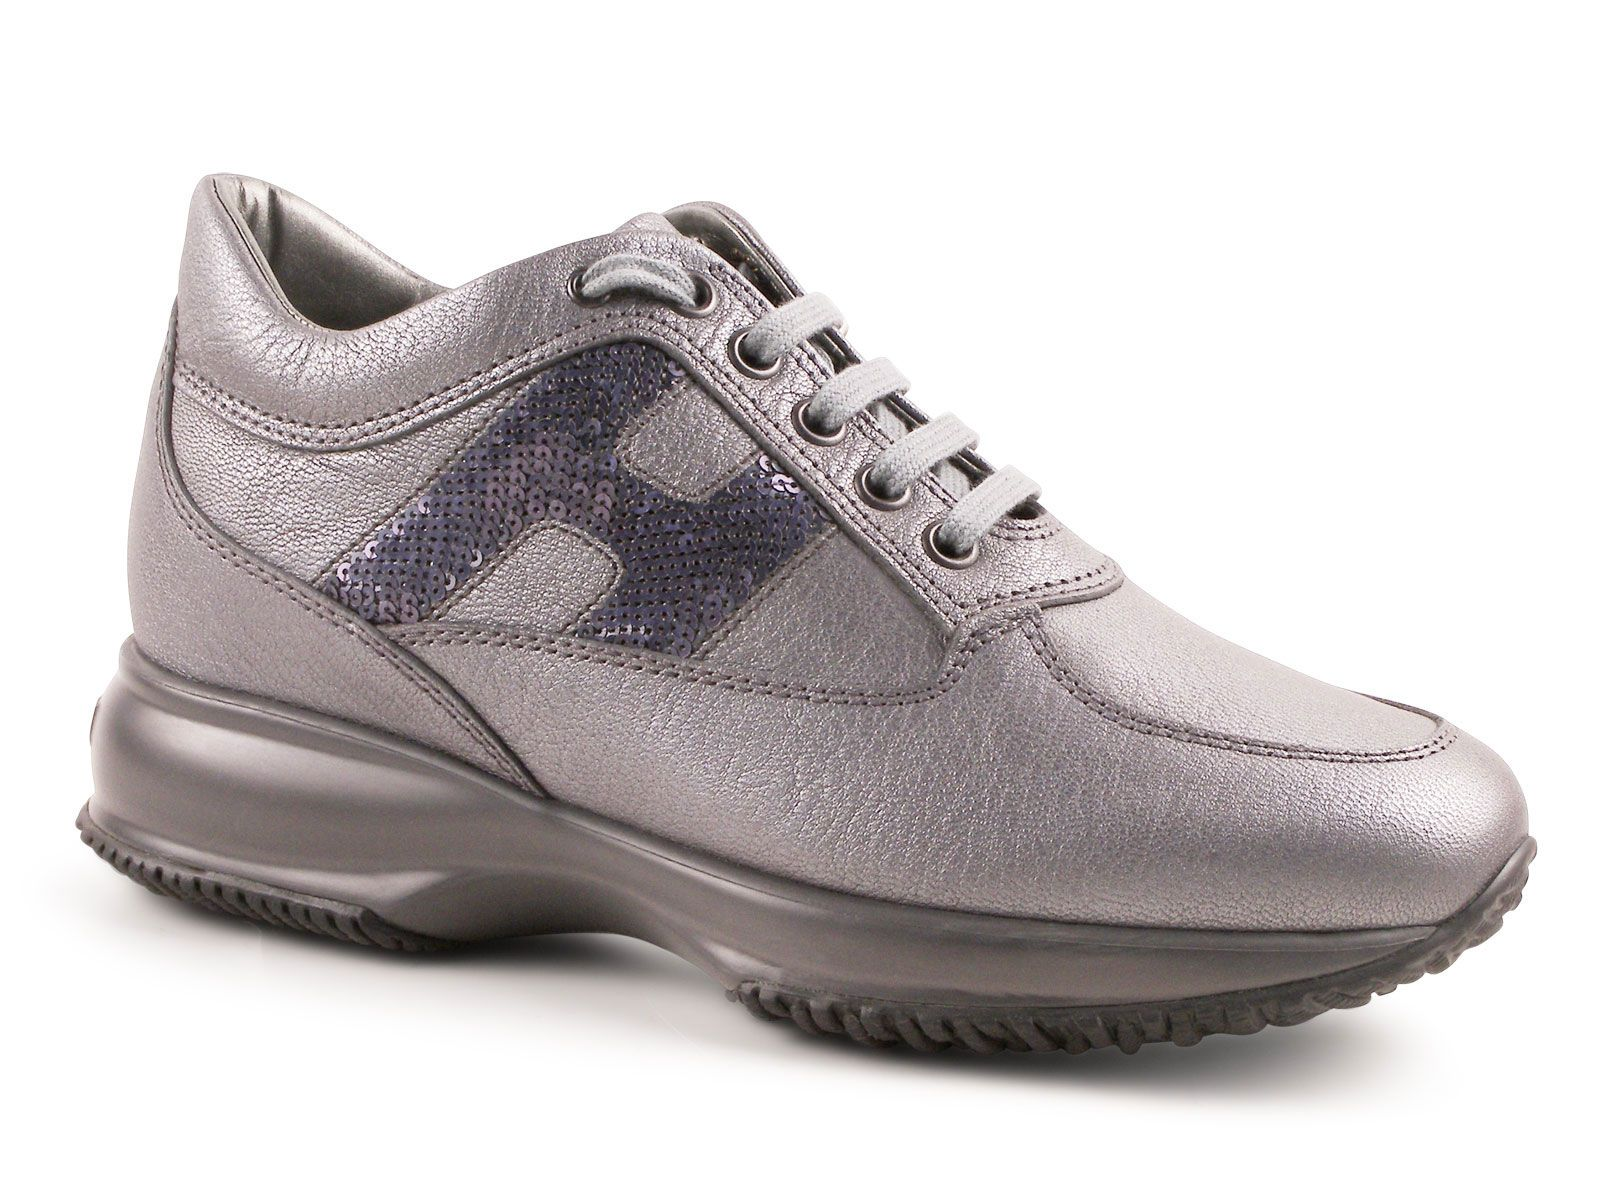 Hogan Shoes for Men and Women